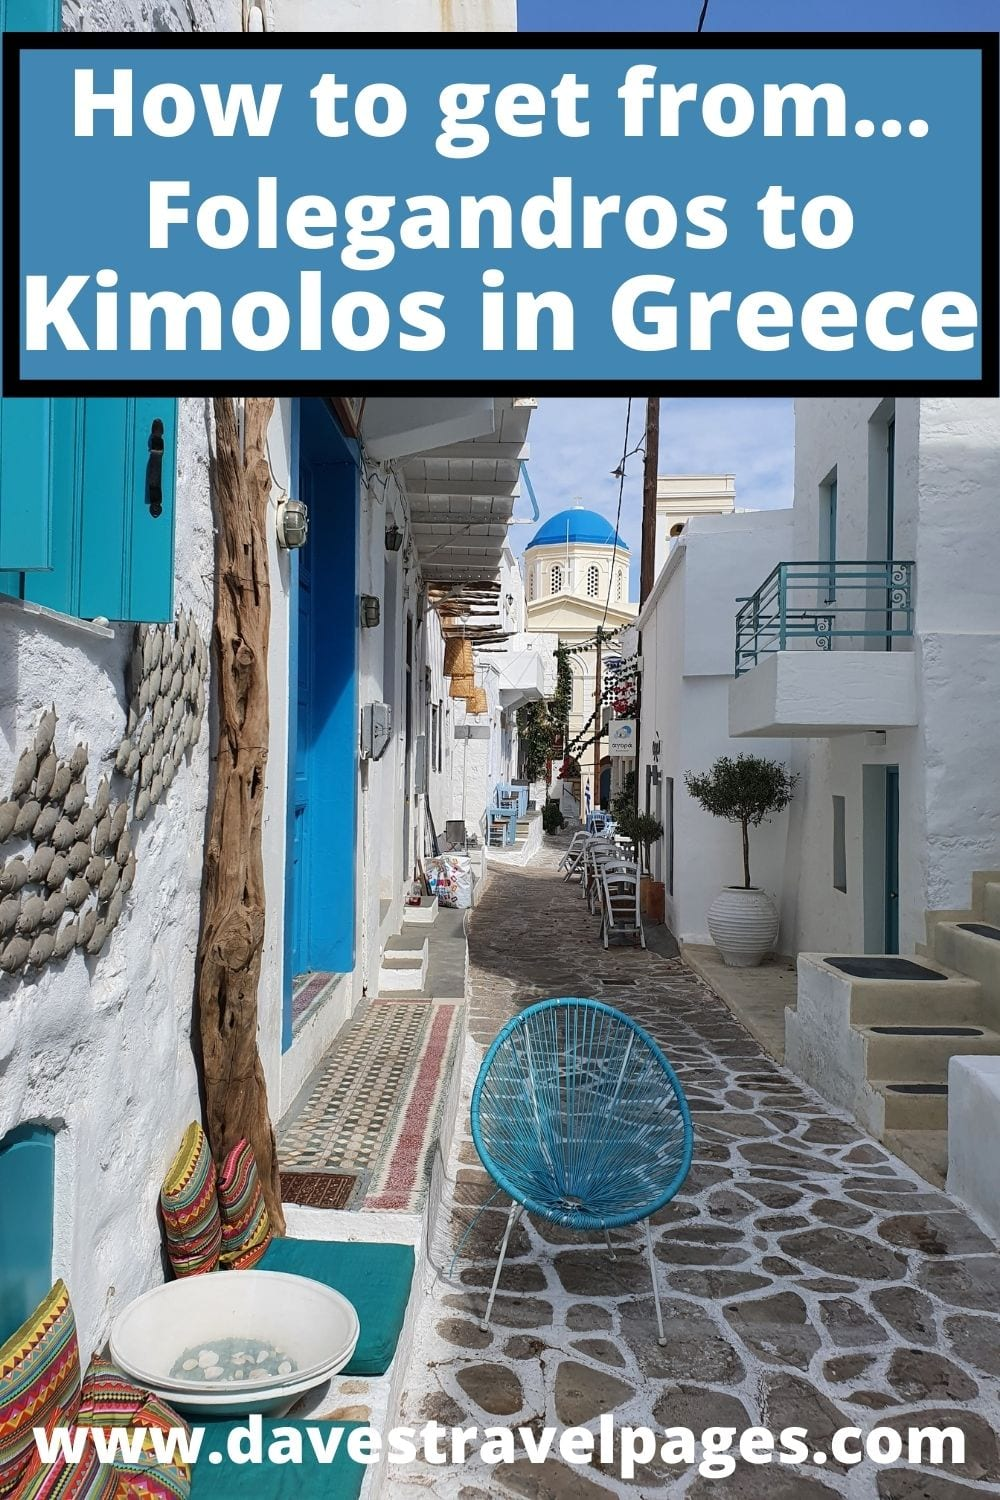 Pin this travel guide on how to get from Folegandros to Kimolos in Greece for later